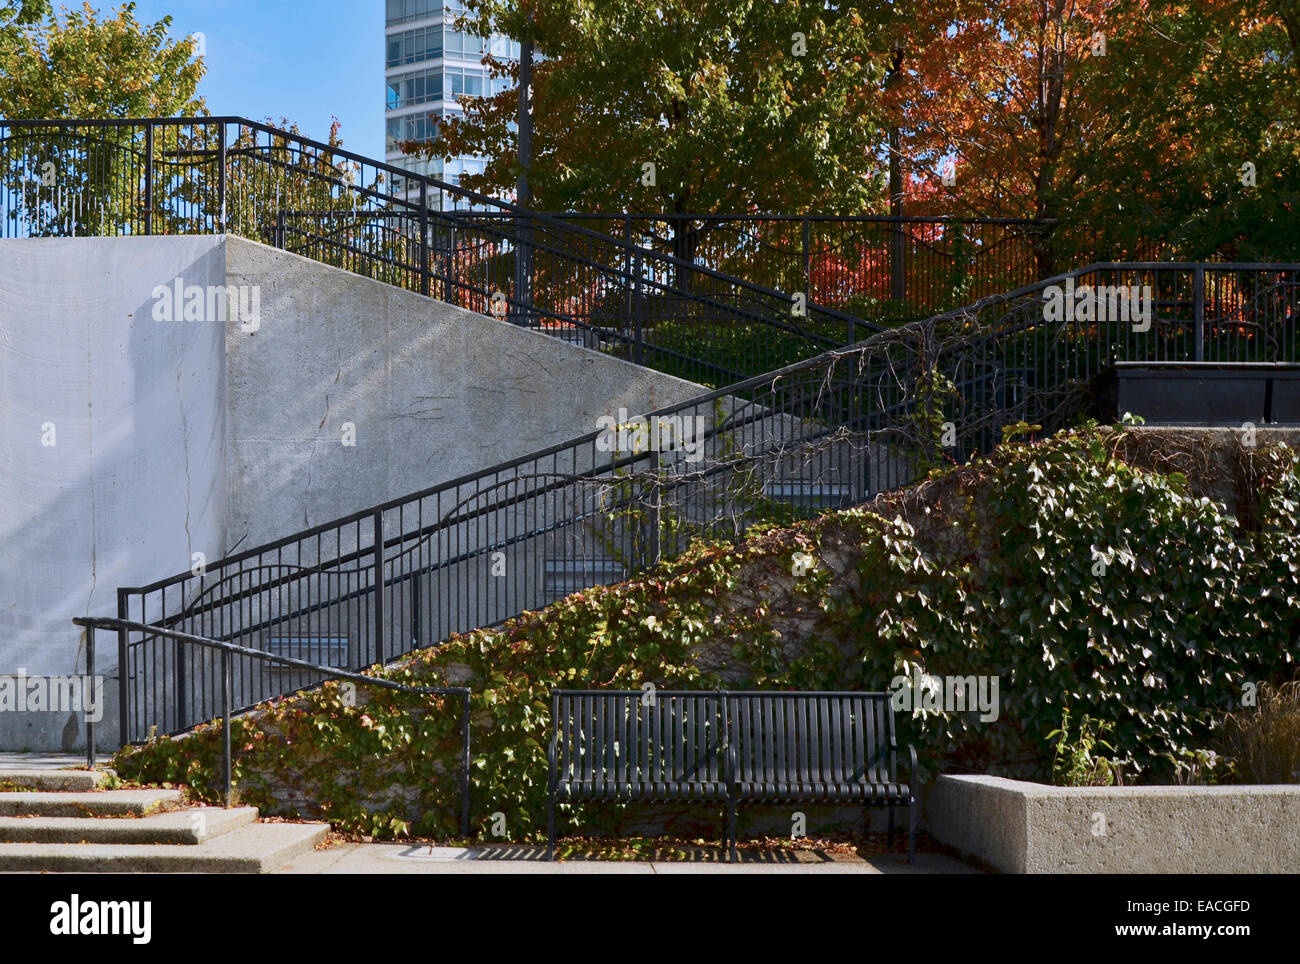 Stairs in Ward, A. Montgomery Park, Chicago - Stock Image